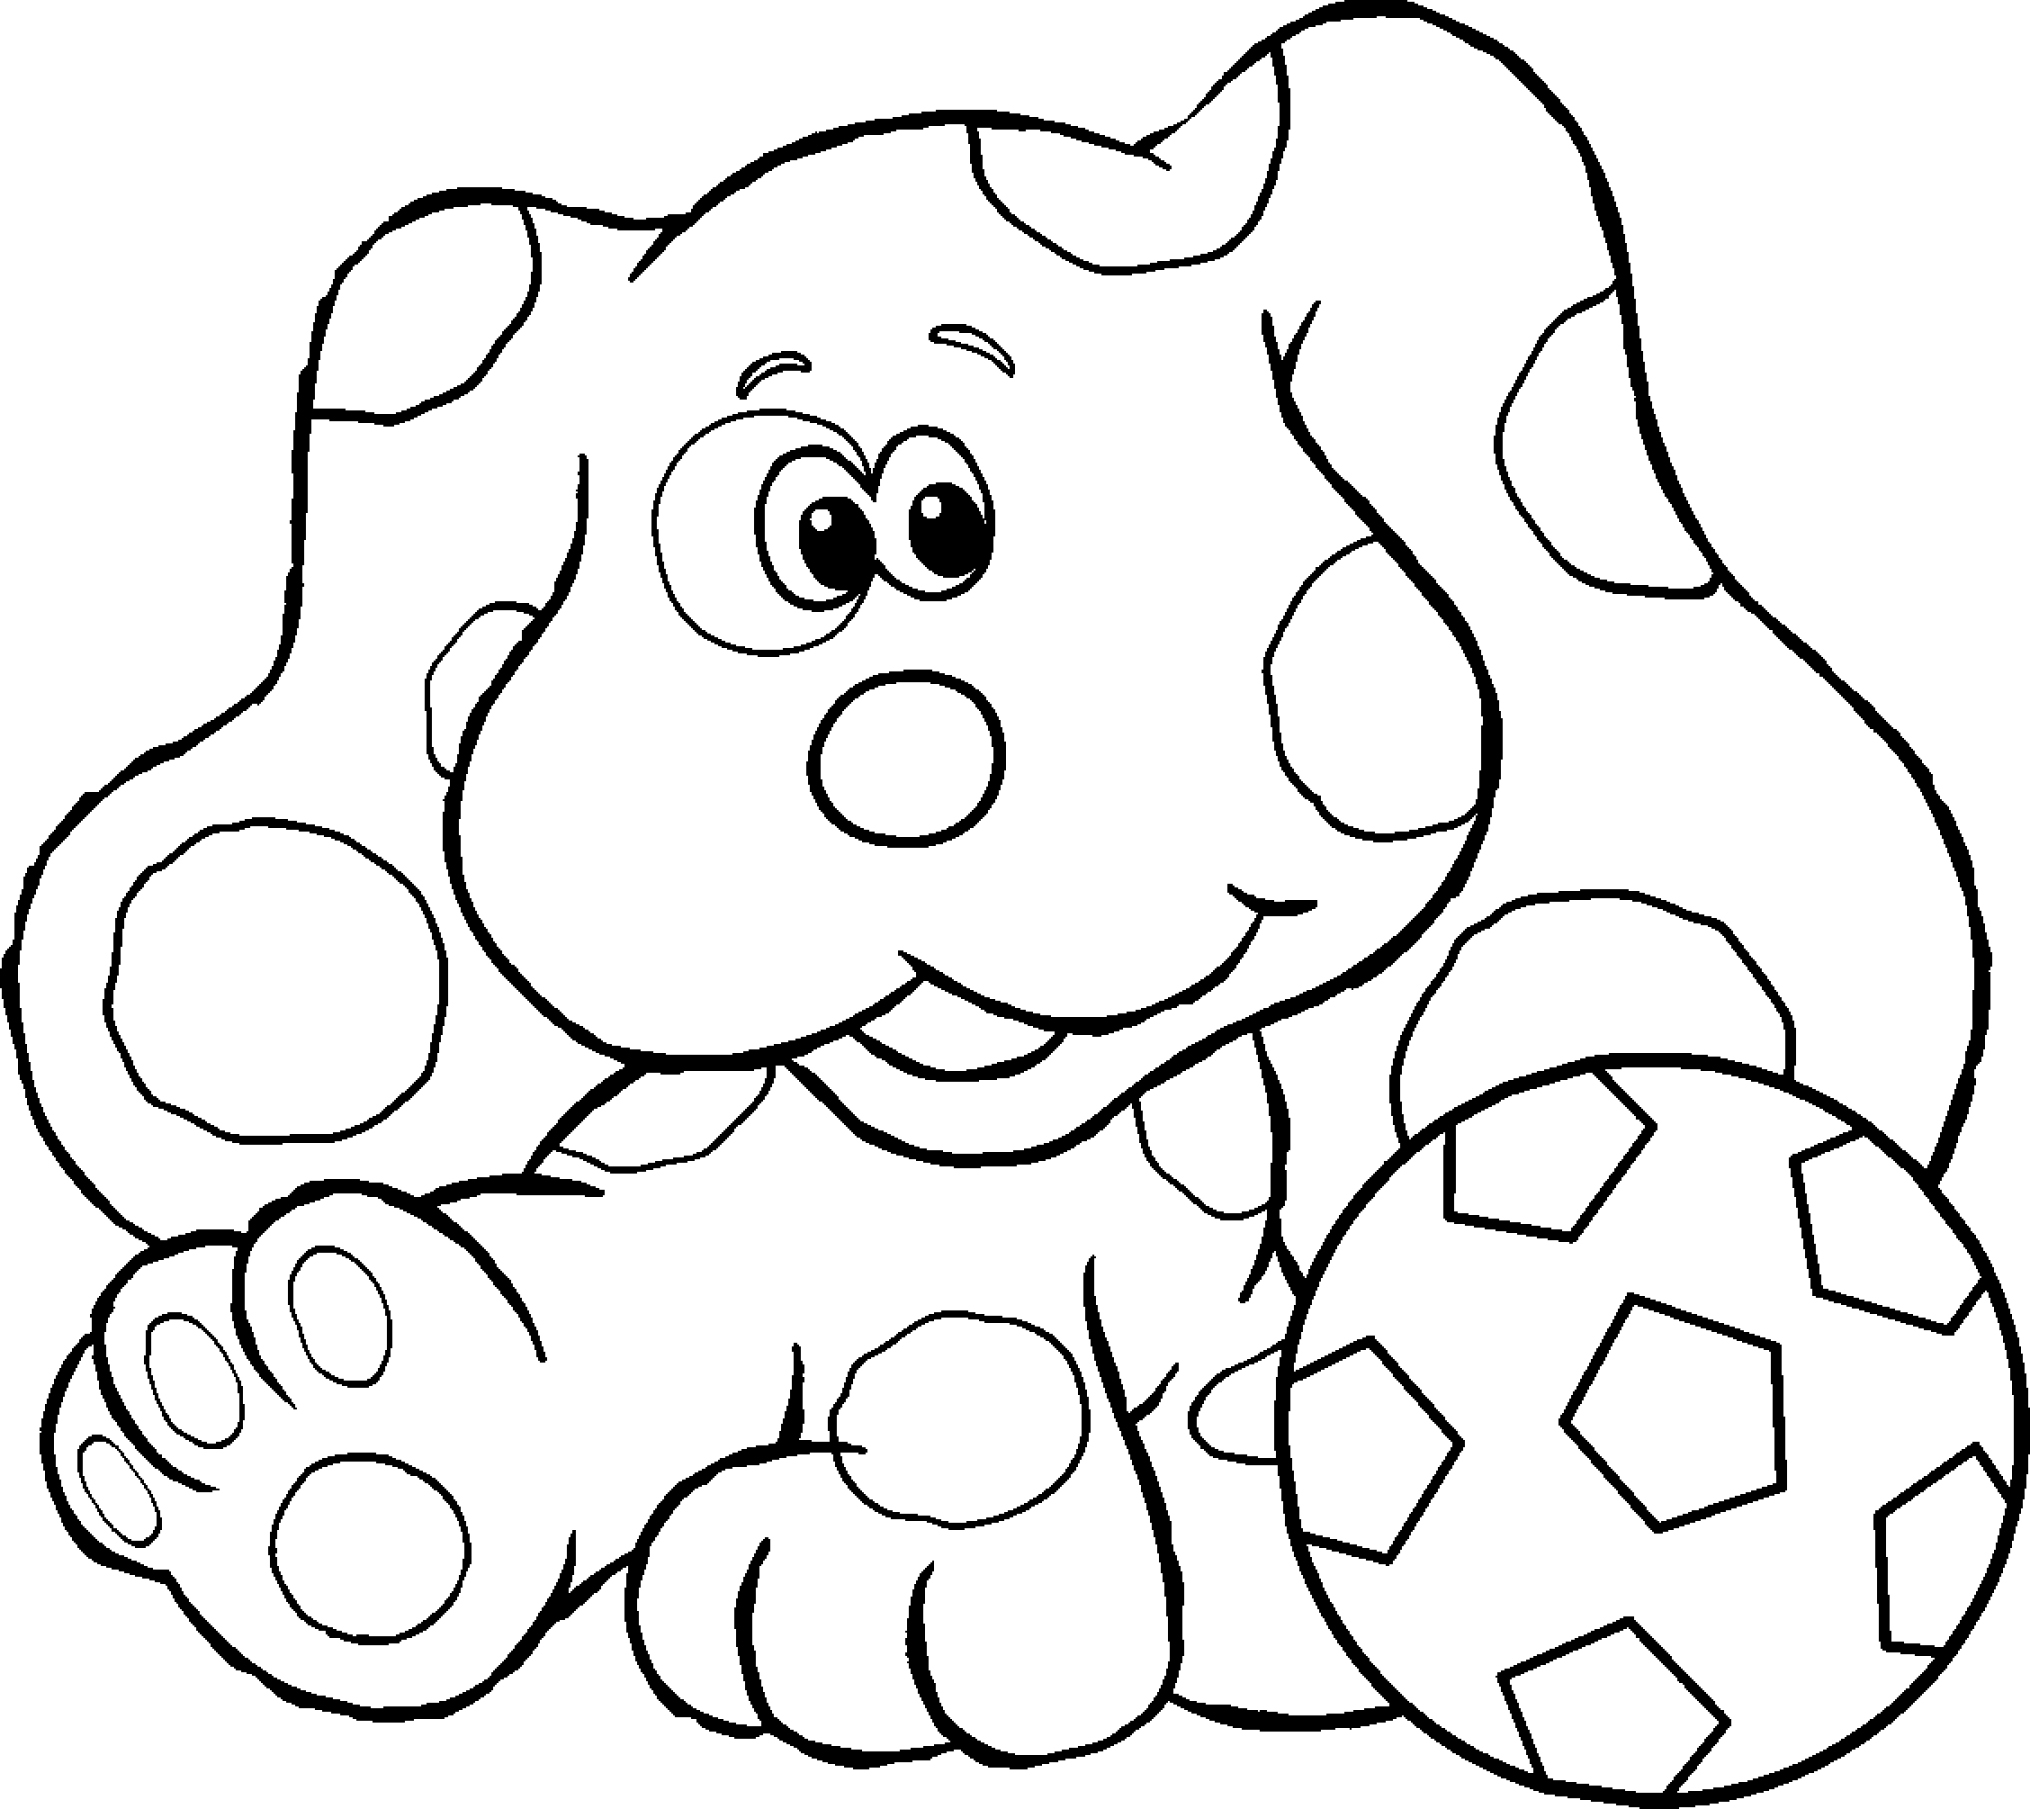 blues clues coloring book